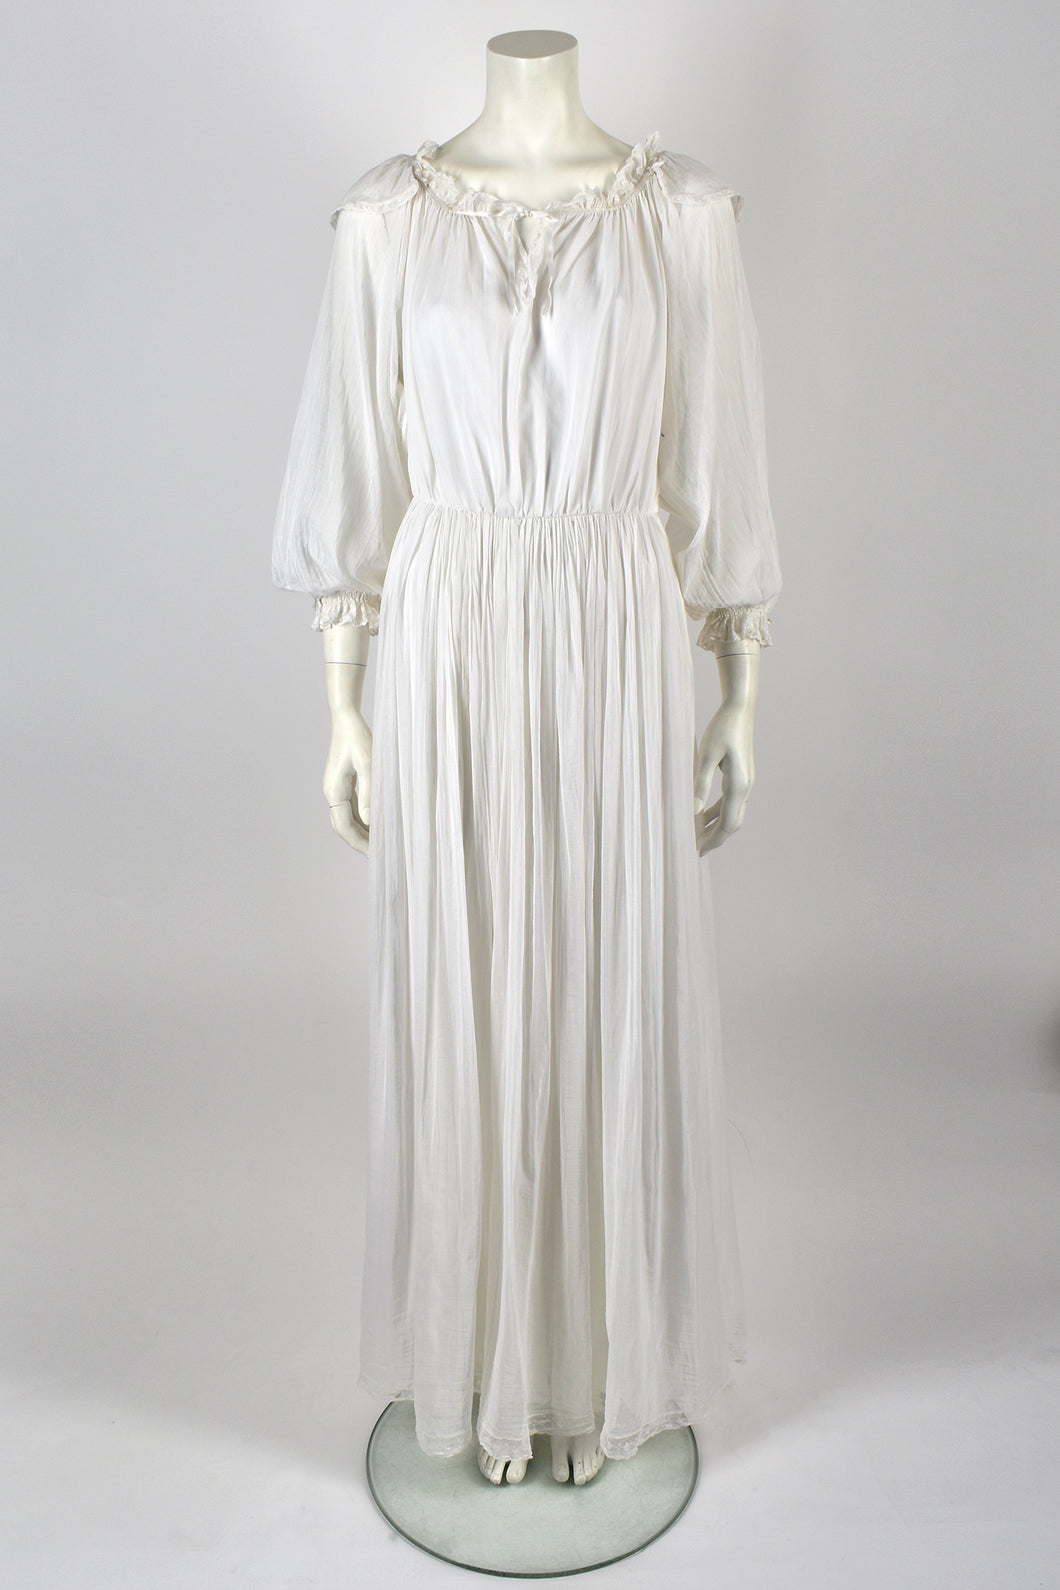 ELIZABETH EMANUEL 70s cotton lace trim dress / M